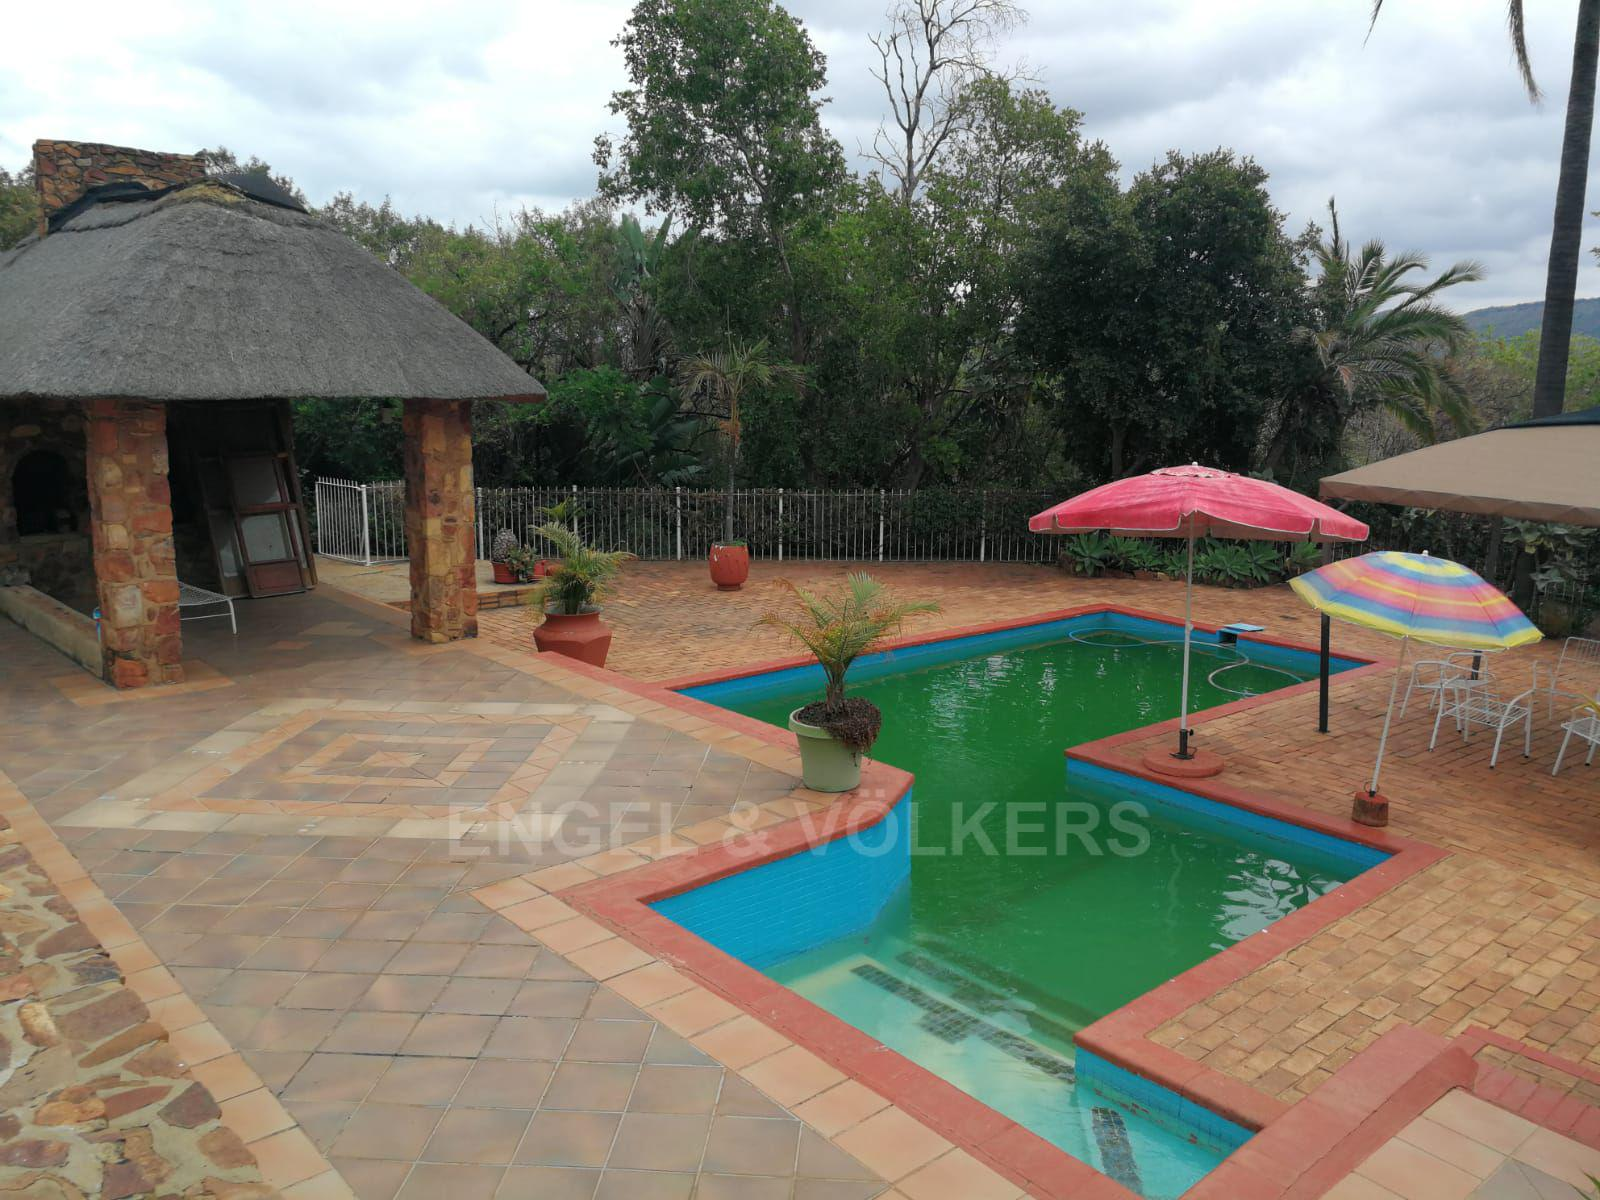 Land in Hartbeespoort Dam Area - Huge pool and entertainment lapa